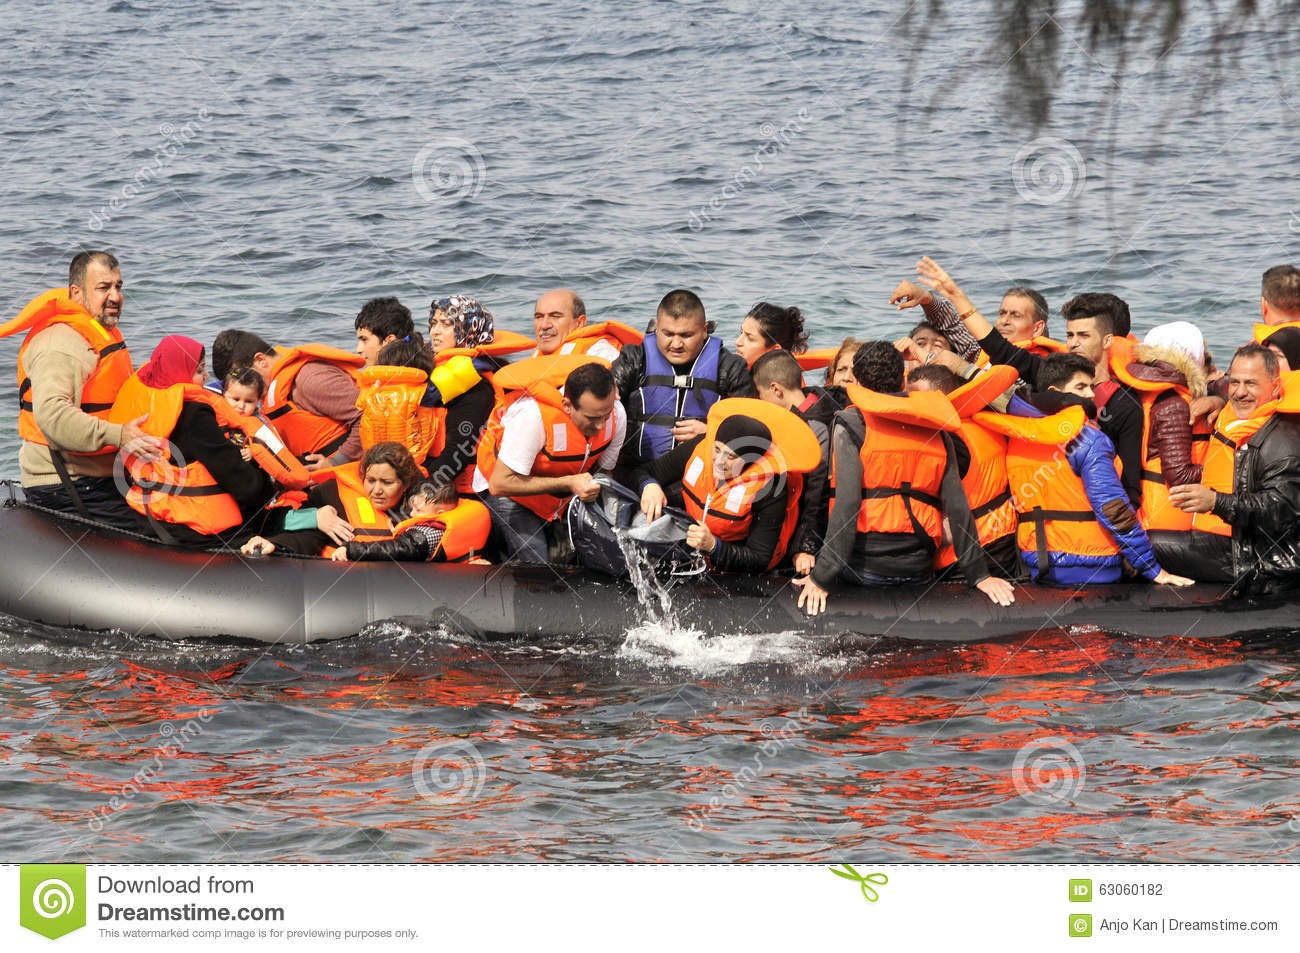 Refugees arriving in Greece in dingy boat from Turkey